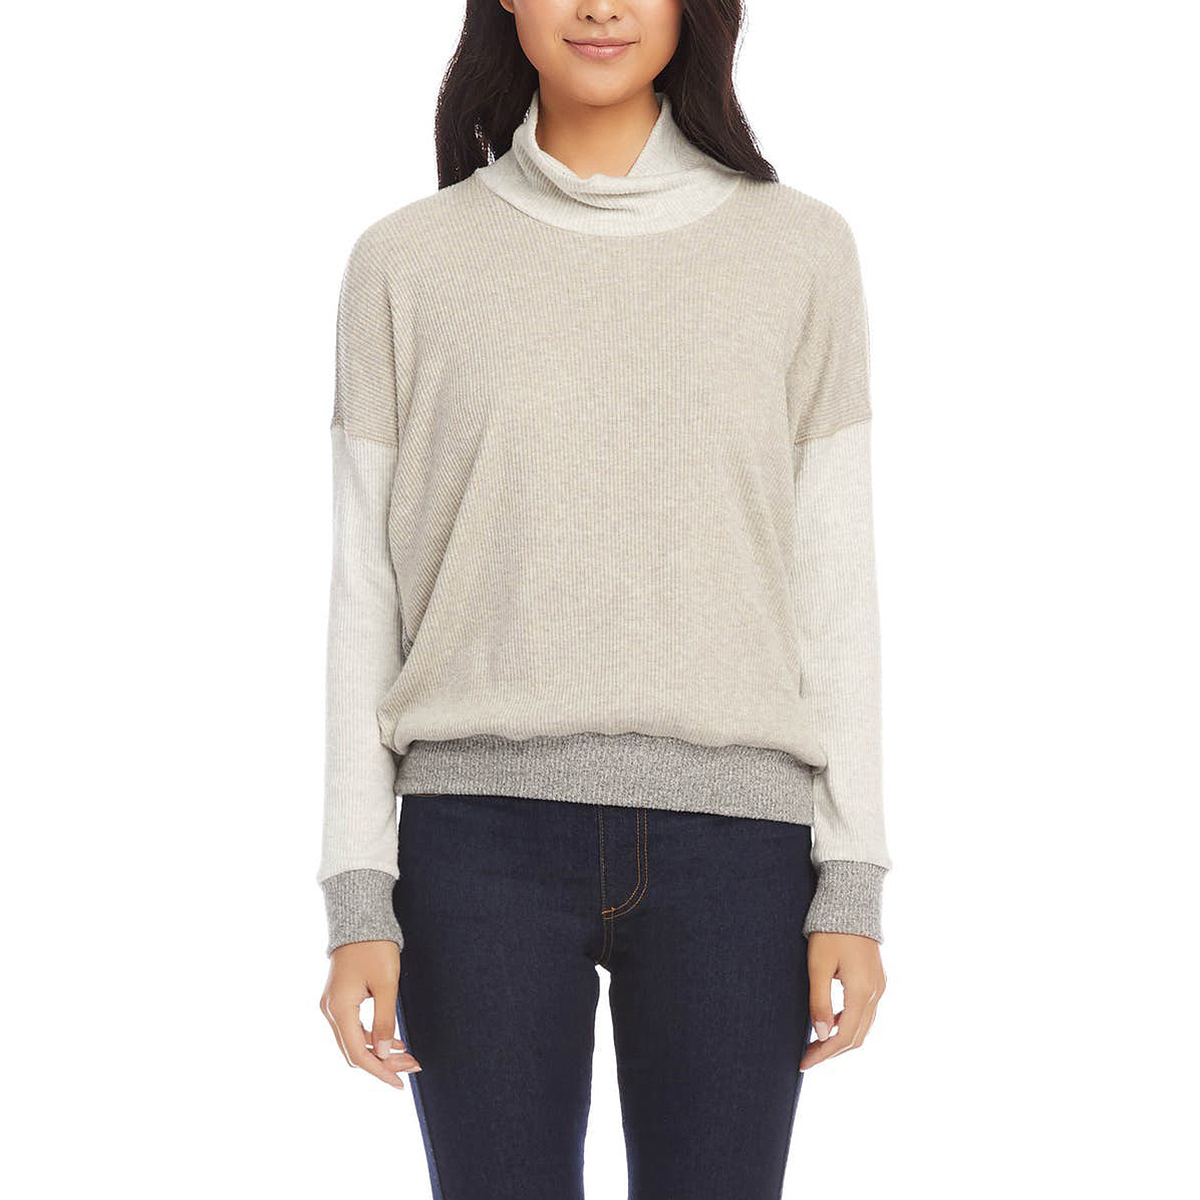 nordstrom-ribbed-clothing-turtleneck-sweater